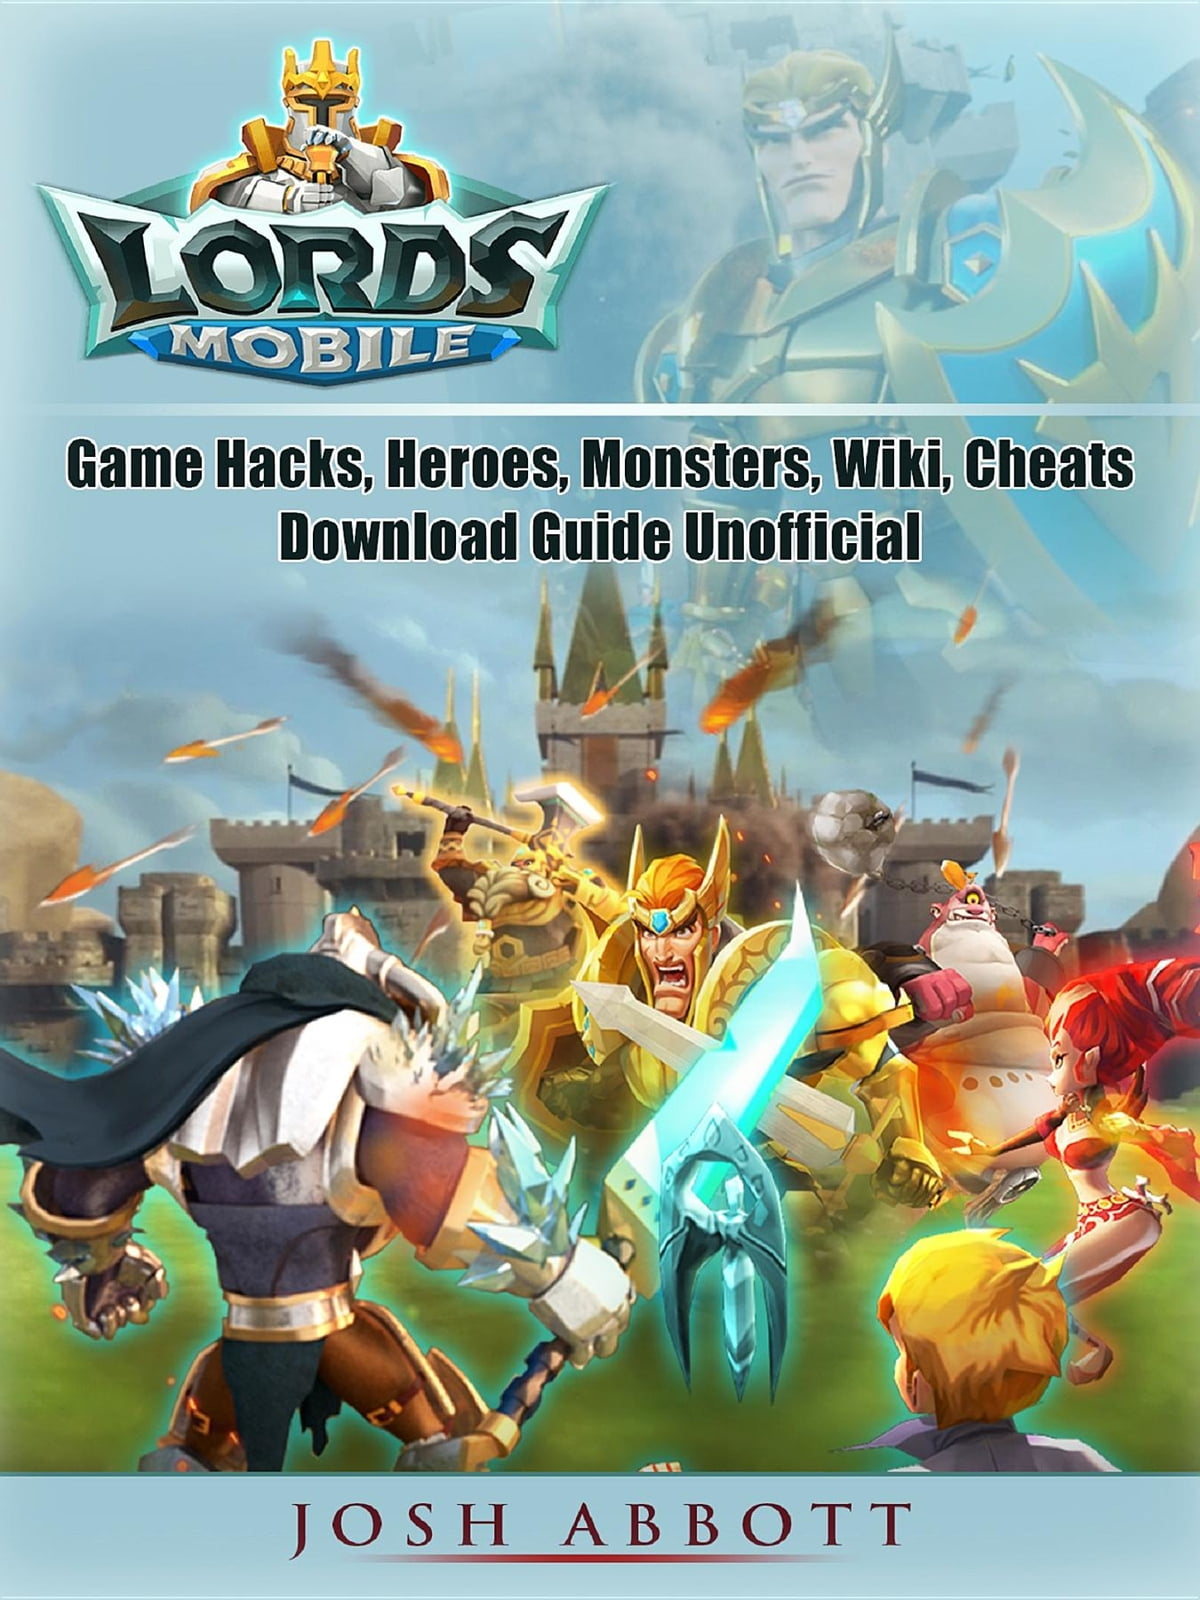 Lords Mobile Game Hacks, Heroes, Monsters, Wiki, Cheats, Download Guide  Unofficial ebook by Josh Abbott - Rakuten Kobo